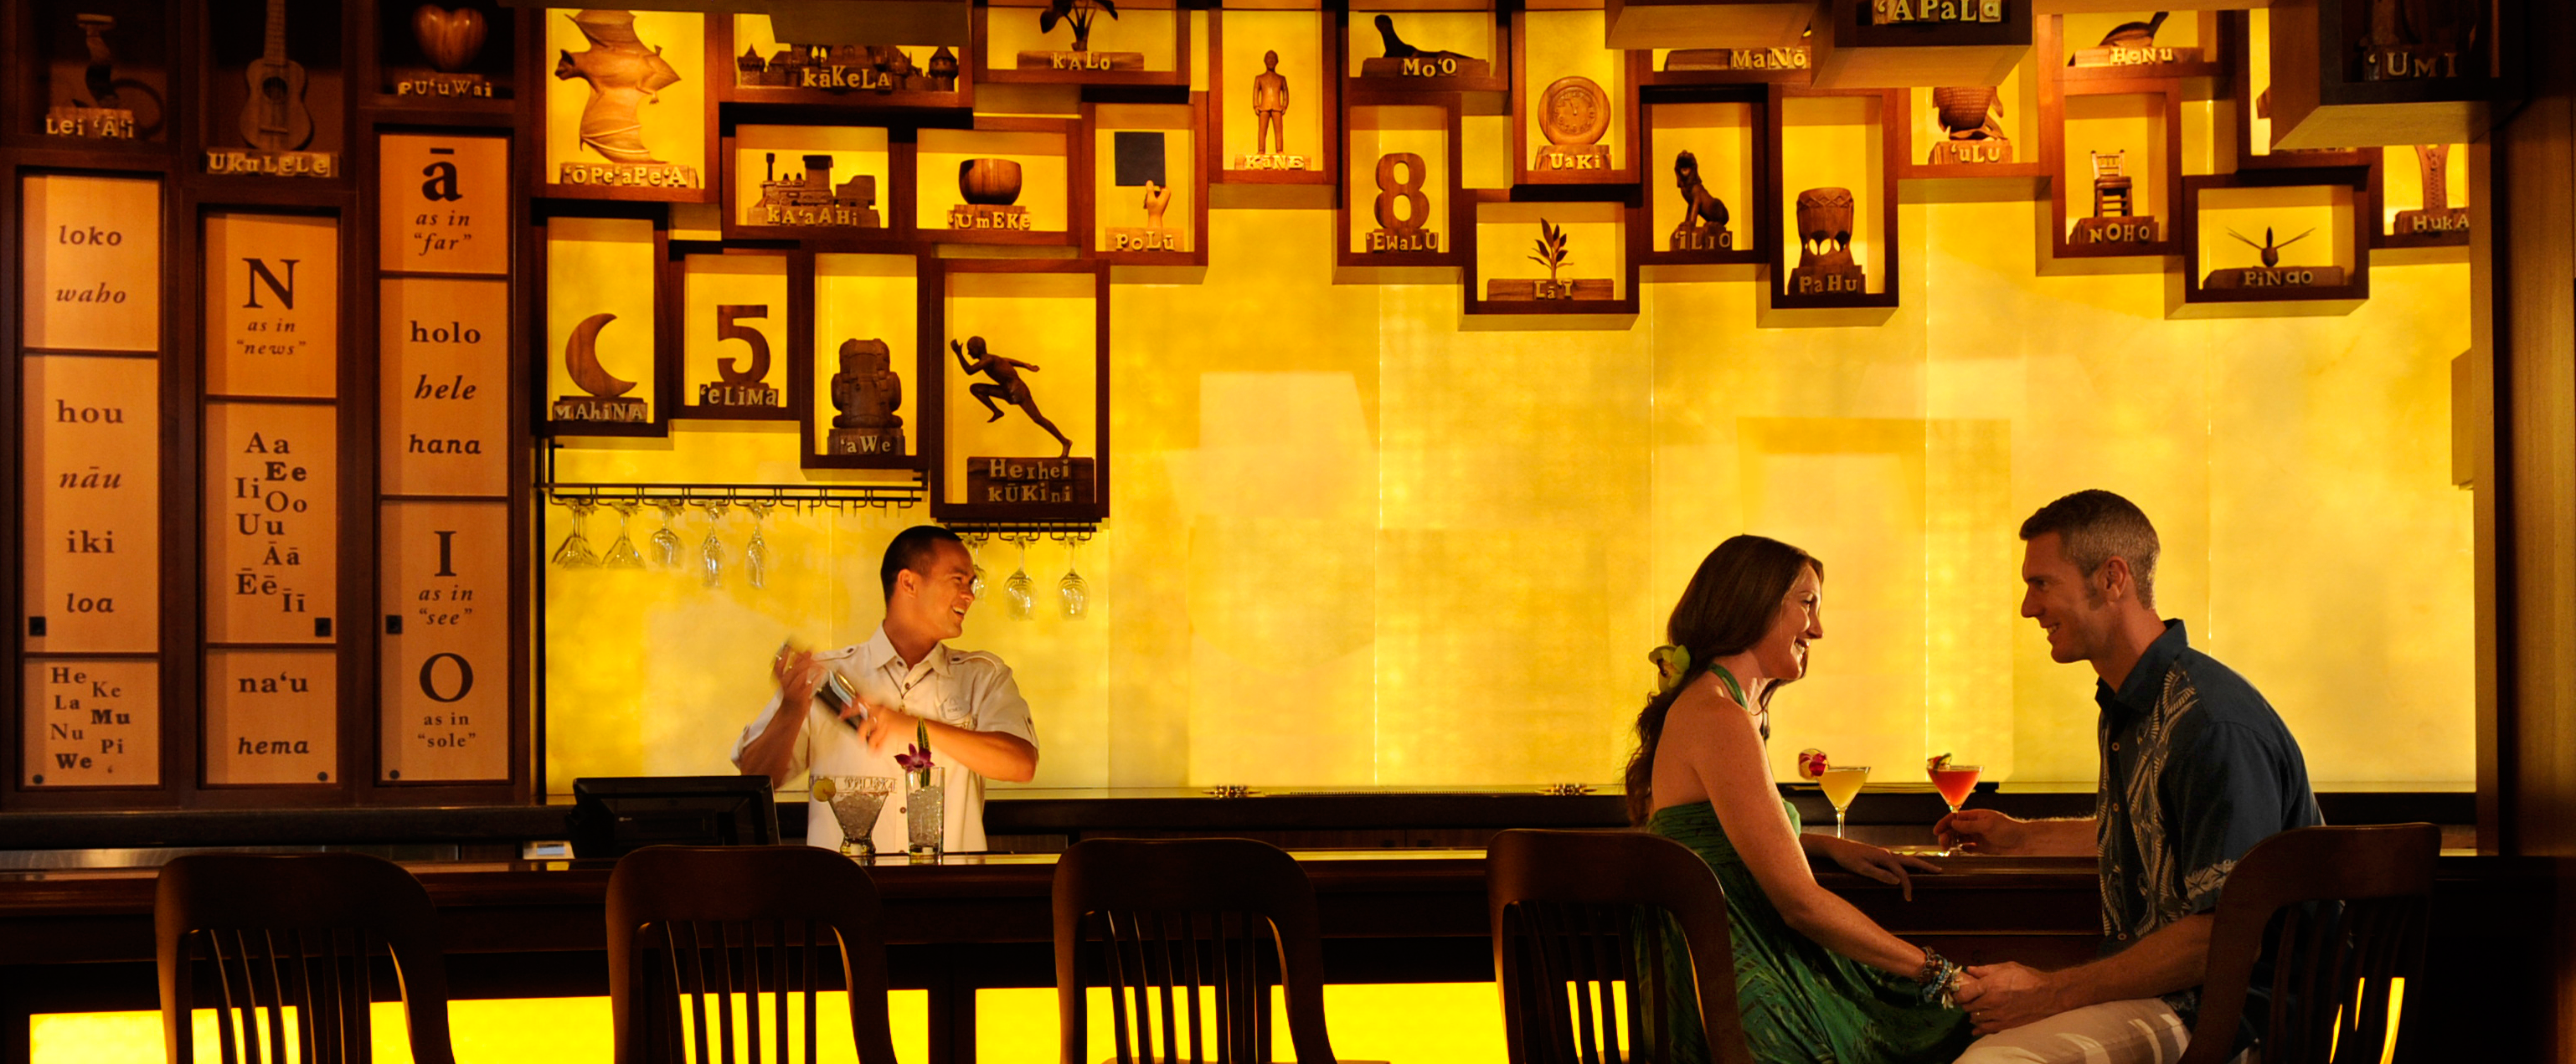 In a stylish bar, a young couple sits hand in hand gazing into each other's eyes while a bartender mixes a drink